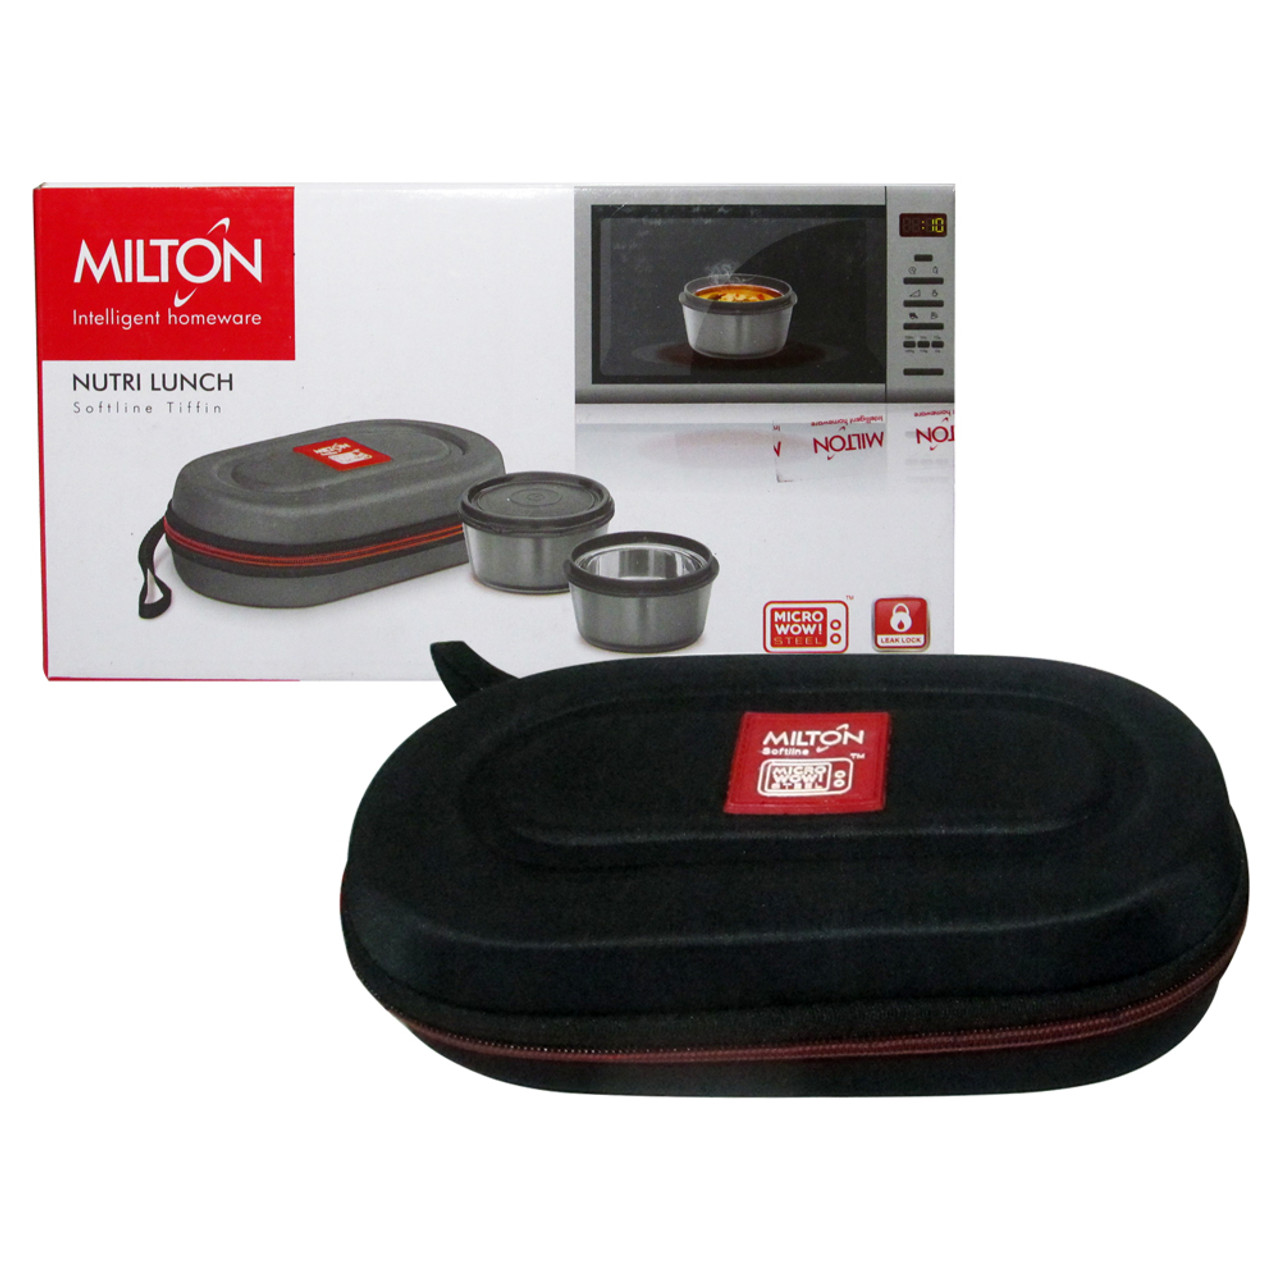 Milton Soft Line Nutri Lunch, 2 Round Leak Proof Container Insulated Lunch Box - Image 7